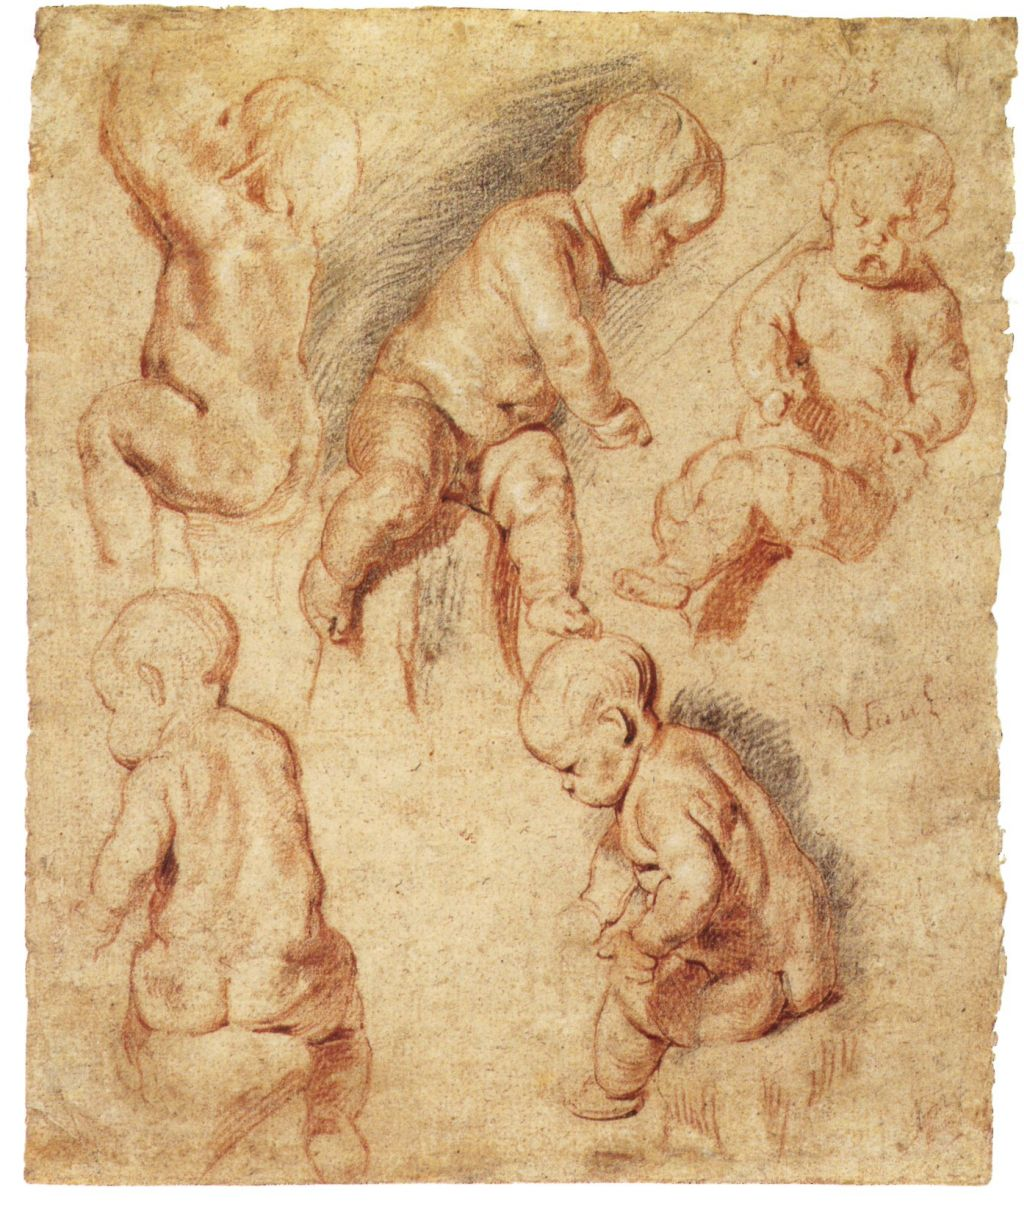 Estudi de putti, Jacob Jordaens